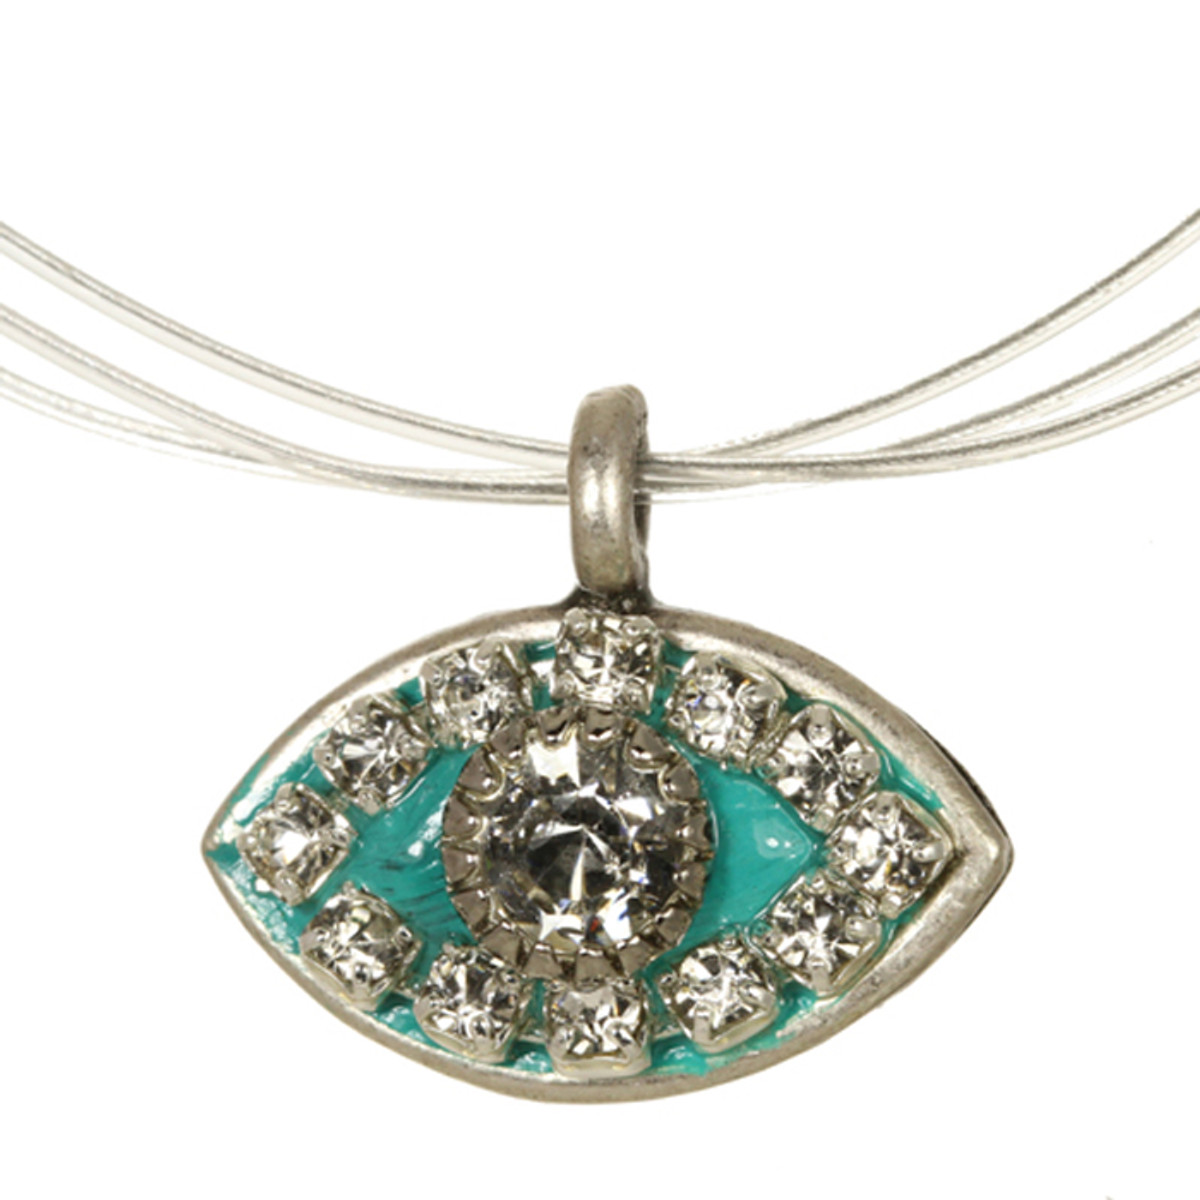 Evil Eye Necklace - Michal Golan Medium, Blue Green Eye With Clear Crystal Center And Edges On Wire Chain